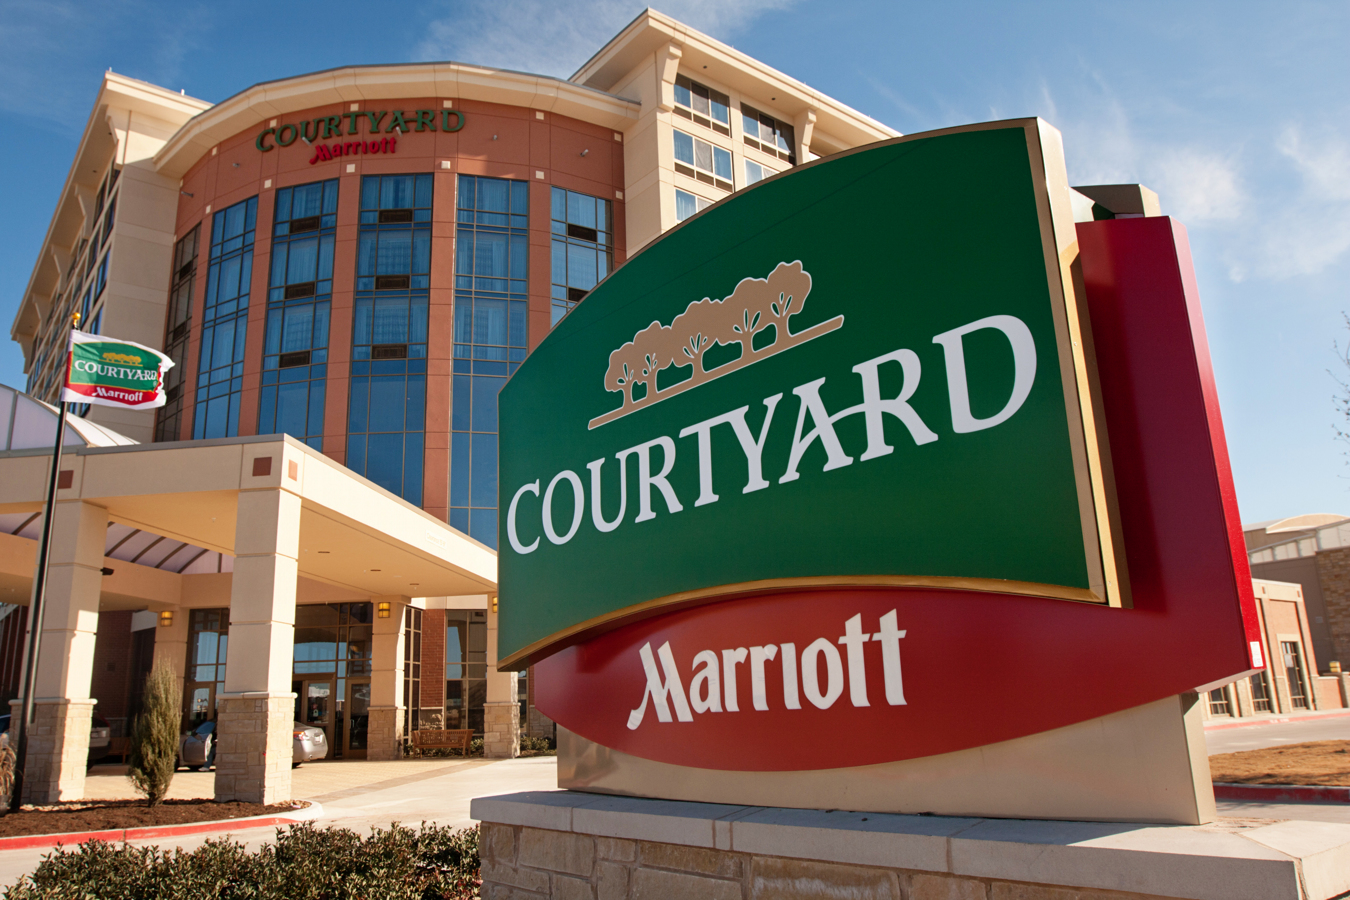 Courtyard By Marriott Archives Travelandtourworld